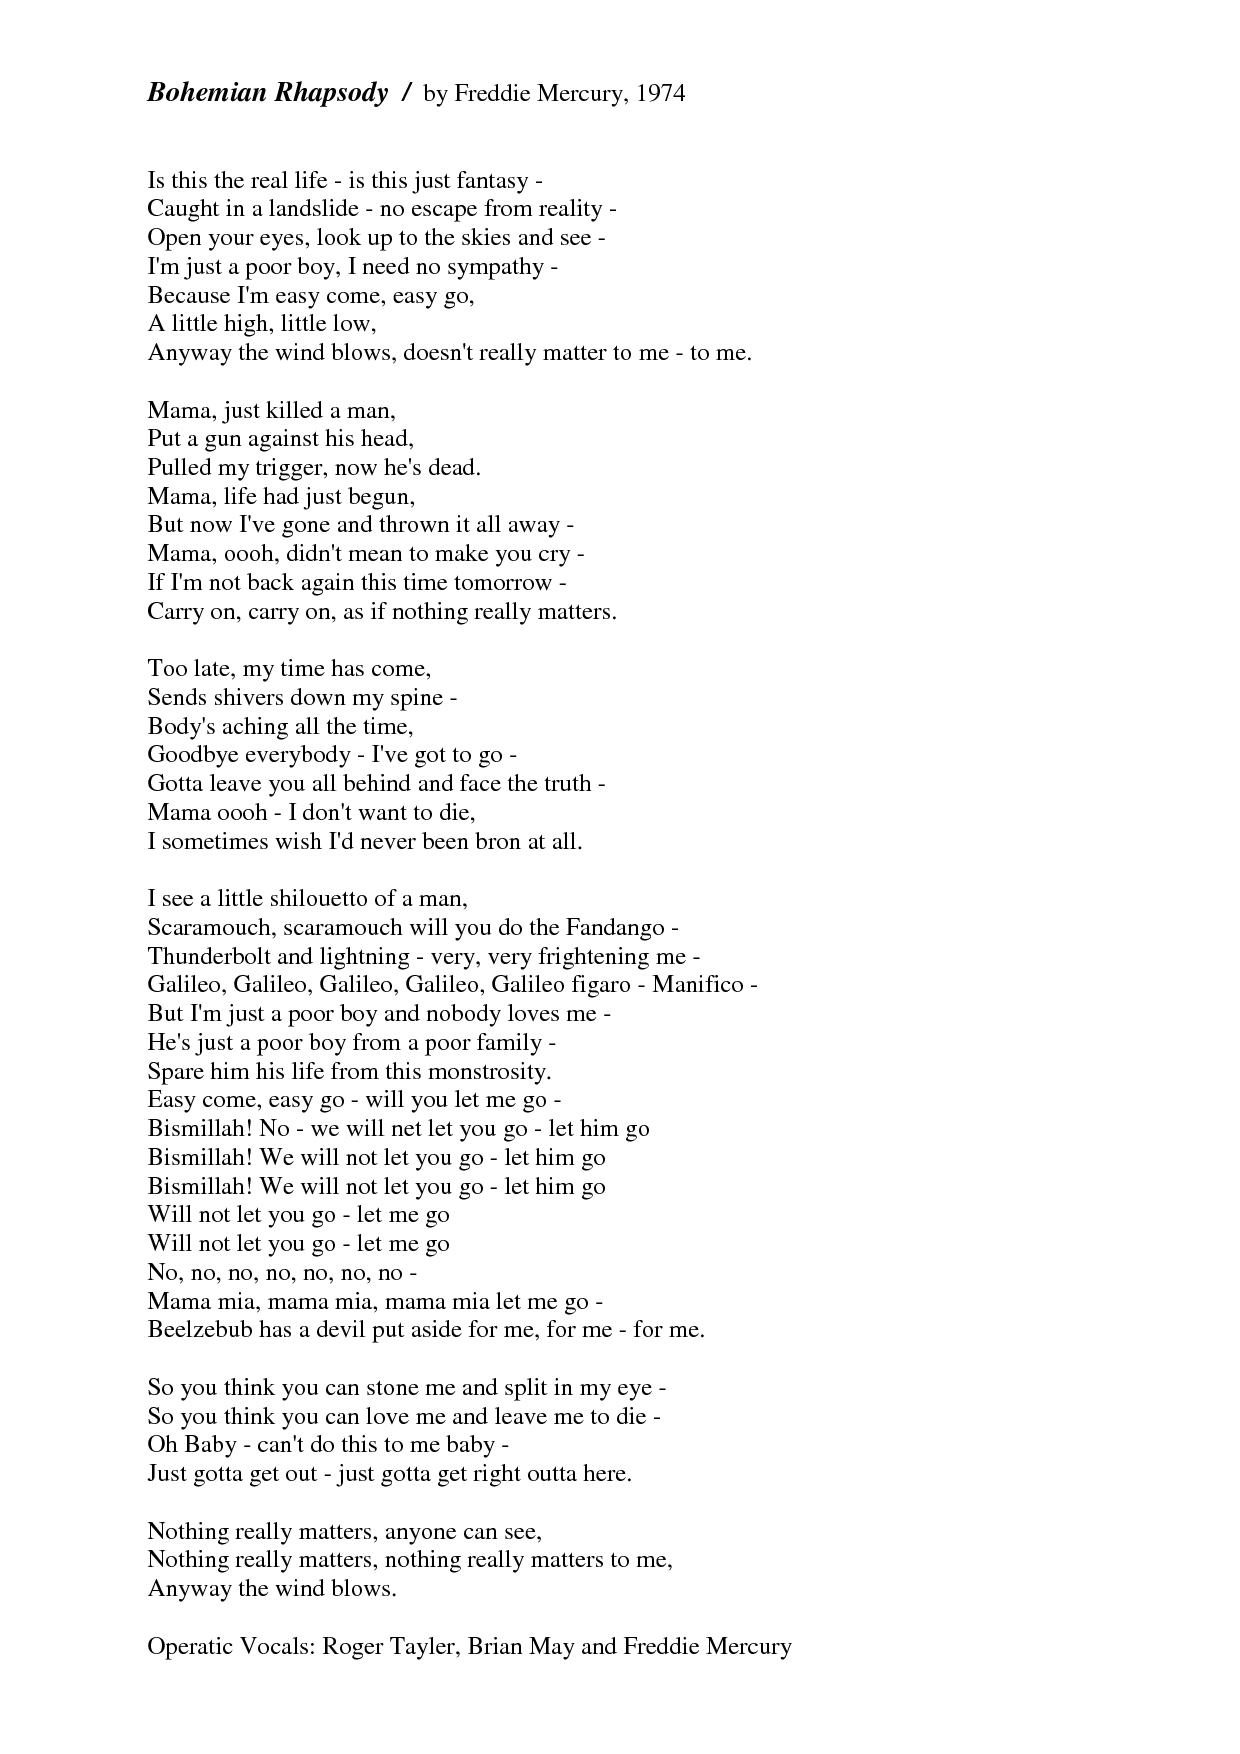 Lyrics: Queen For Those Of You That Don't Know